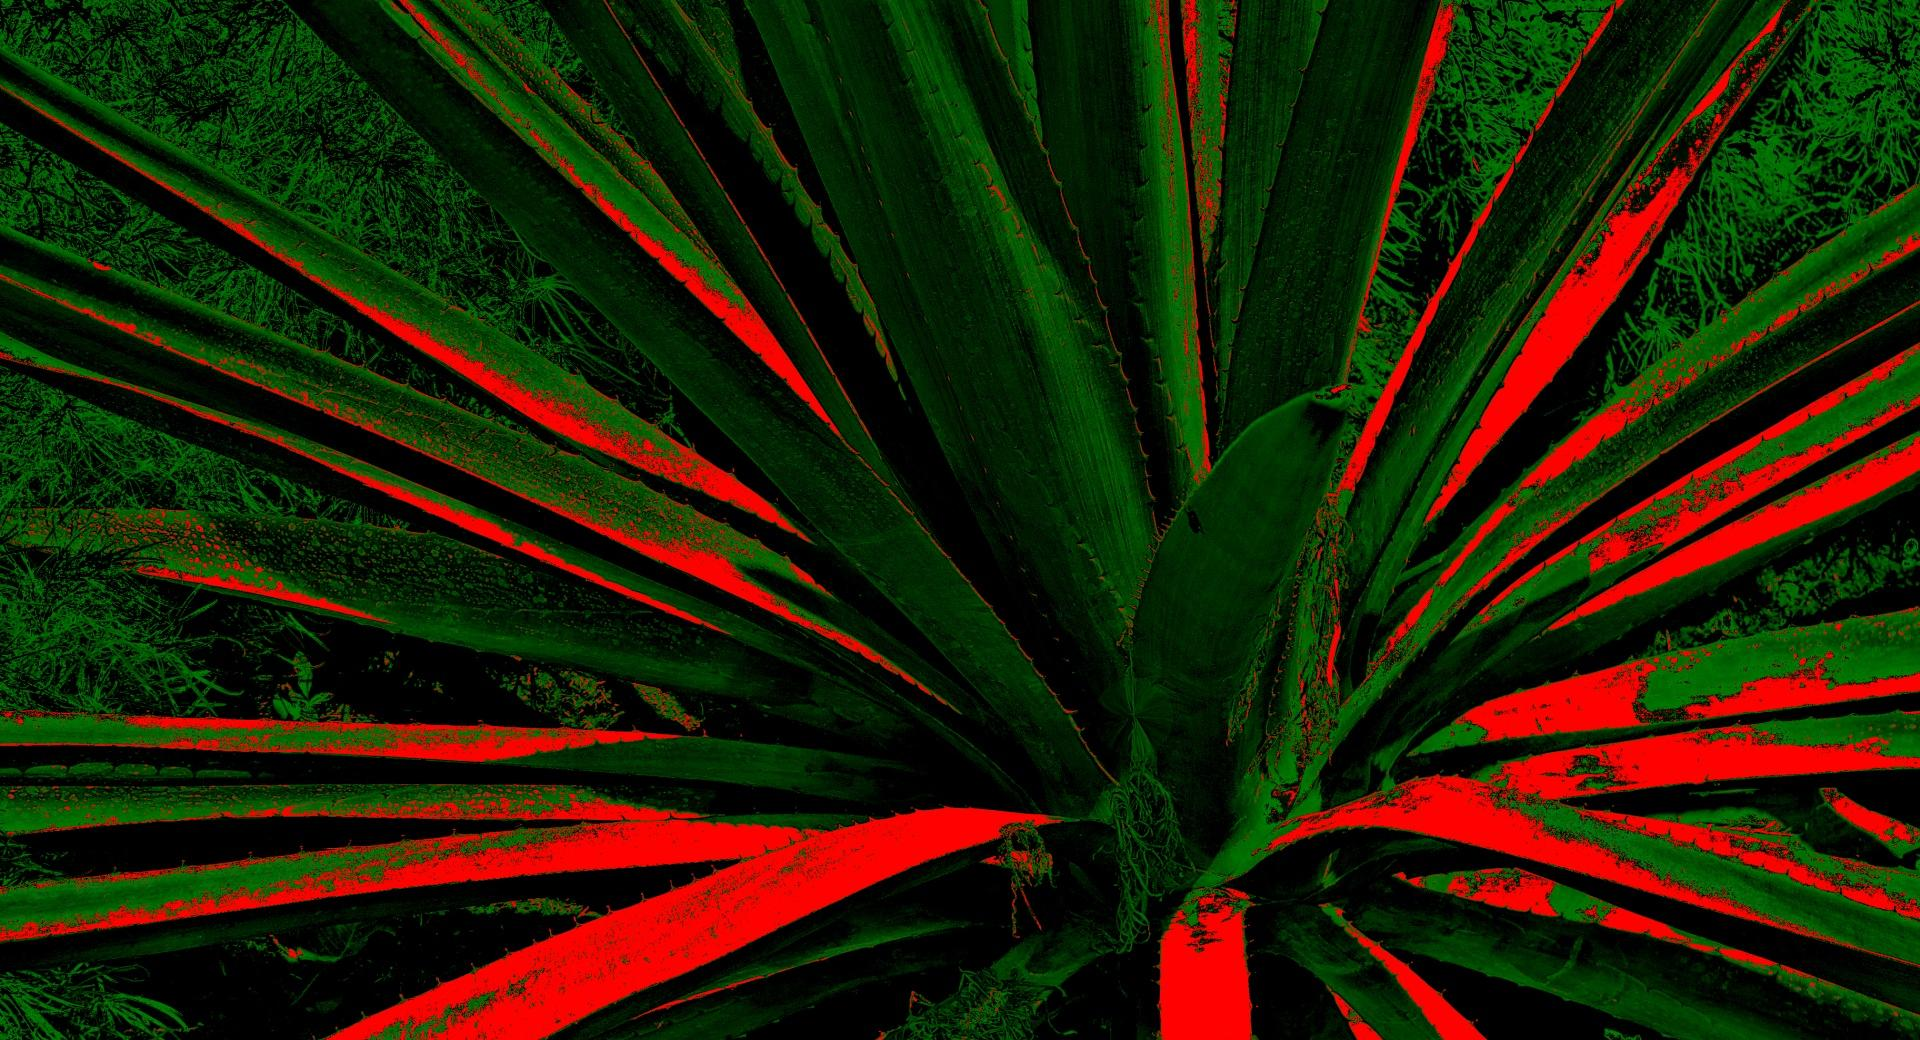 Abstract Cactus wallpapers HD quality